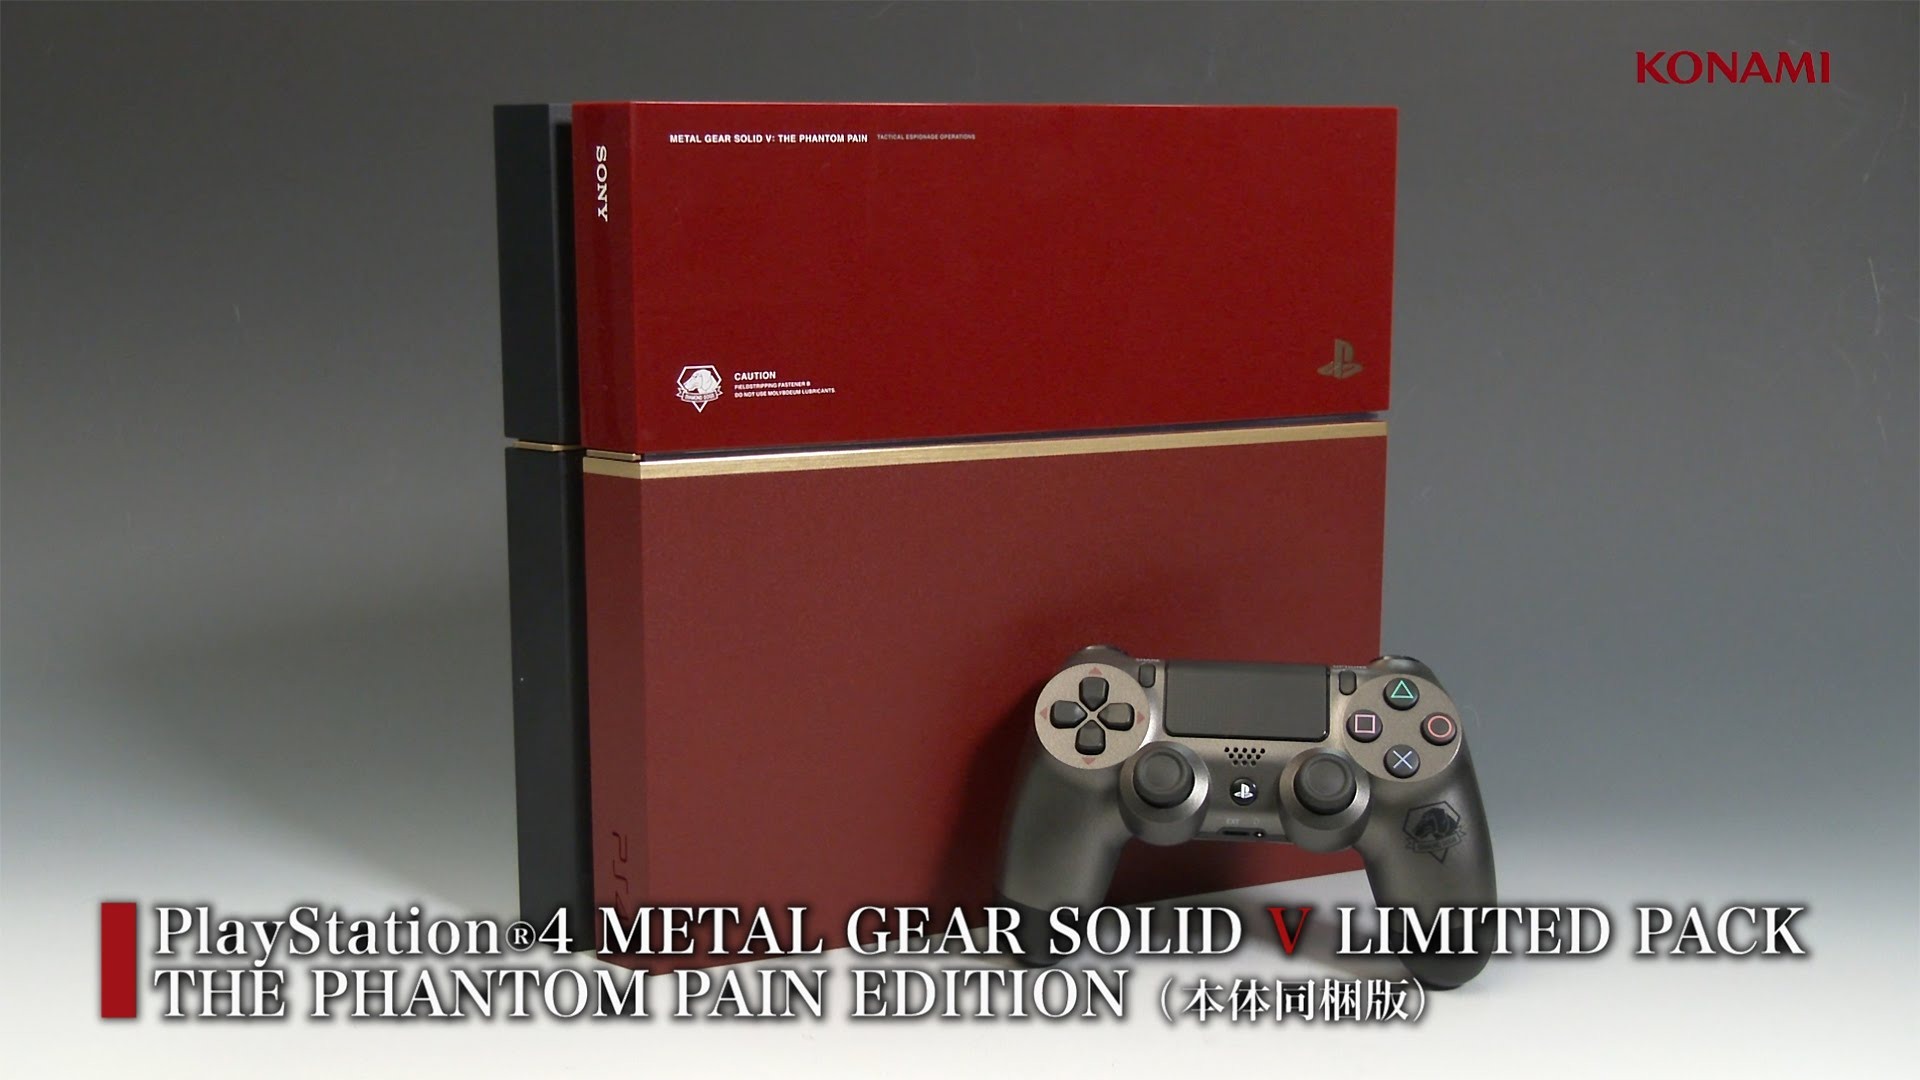 Metal Gear Solid 5 The Phantom Pain: Limited Edition PS4 im Video